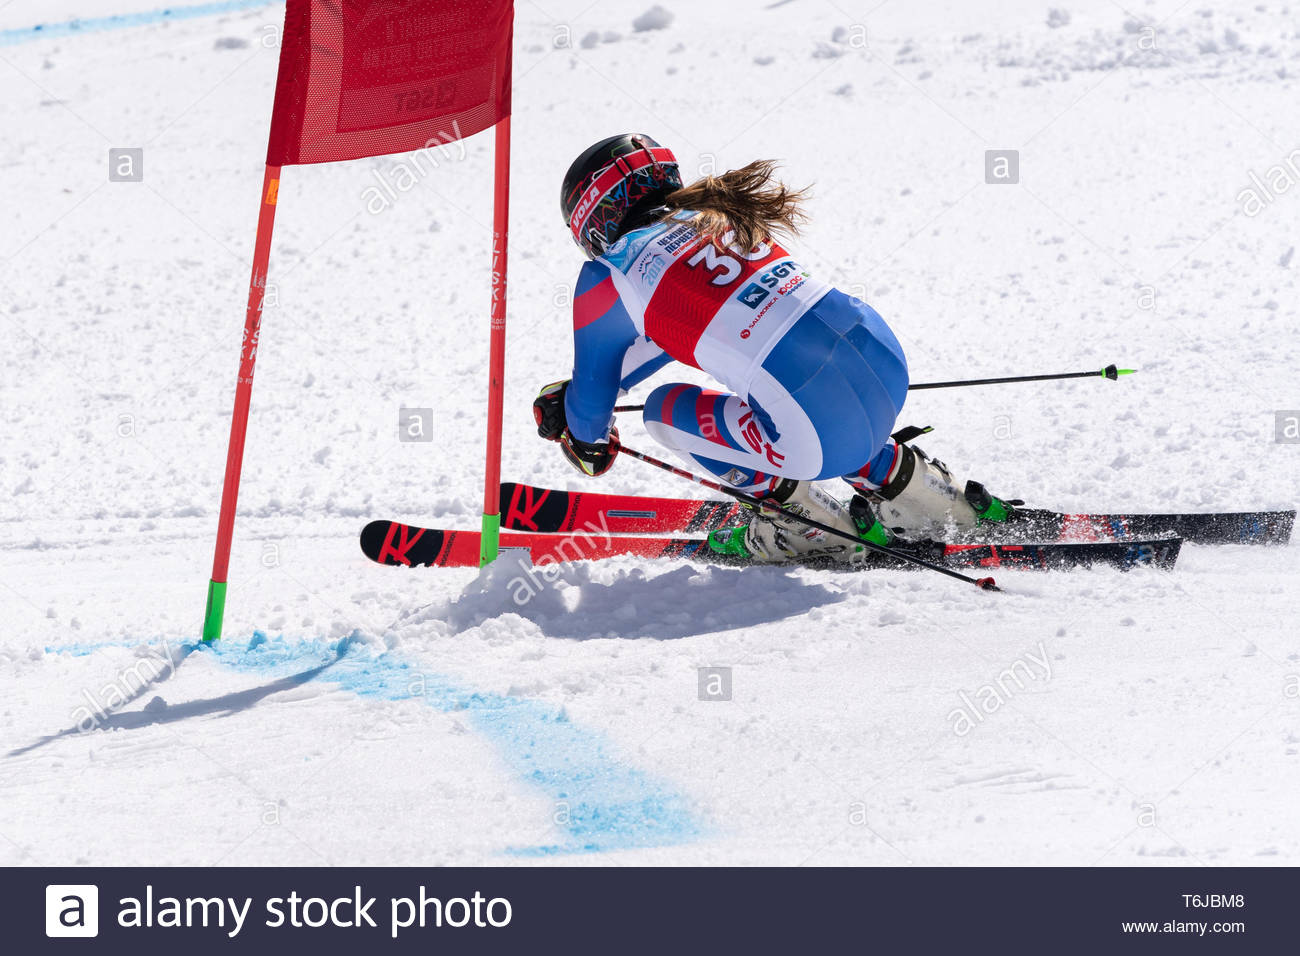 KAMCHATKA PENINSULA, RUSSIAN FEDERATION - APRIL 1, 2019: Russian Women's Alpine Skiing Championship, giant slalom. Mountain skier Ulyana Lendya (Kamch - Stock Image